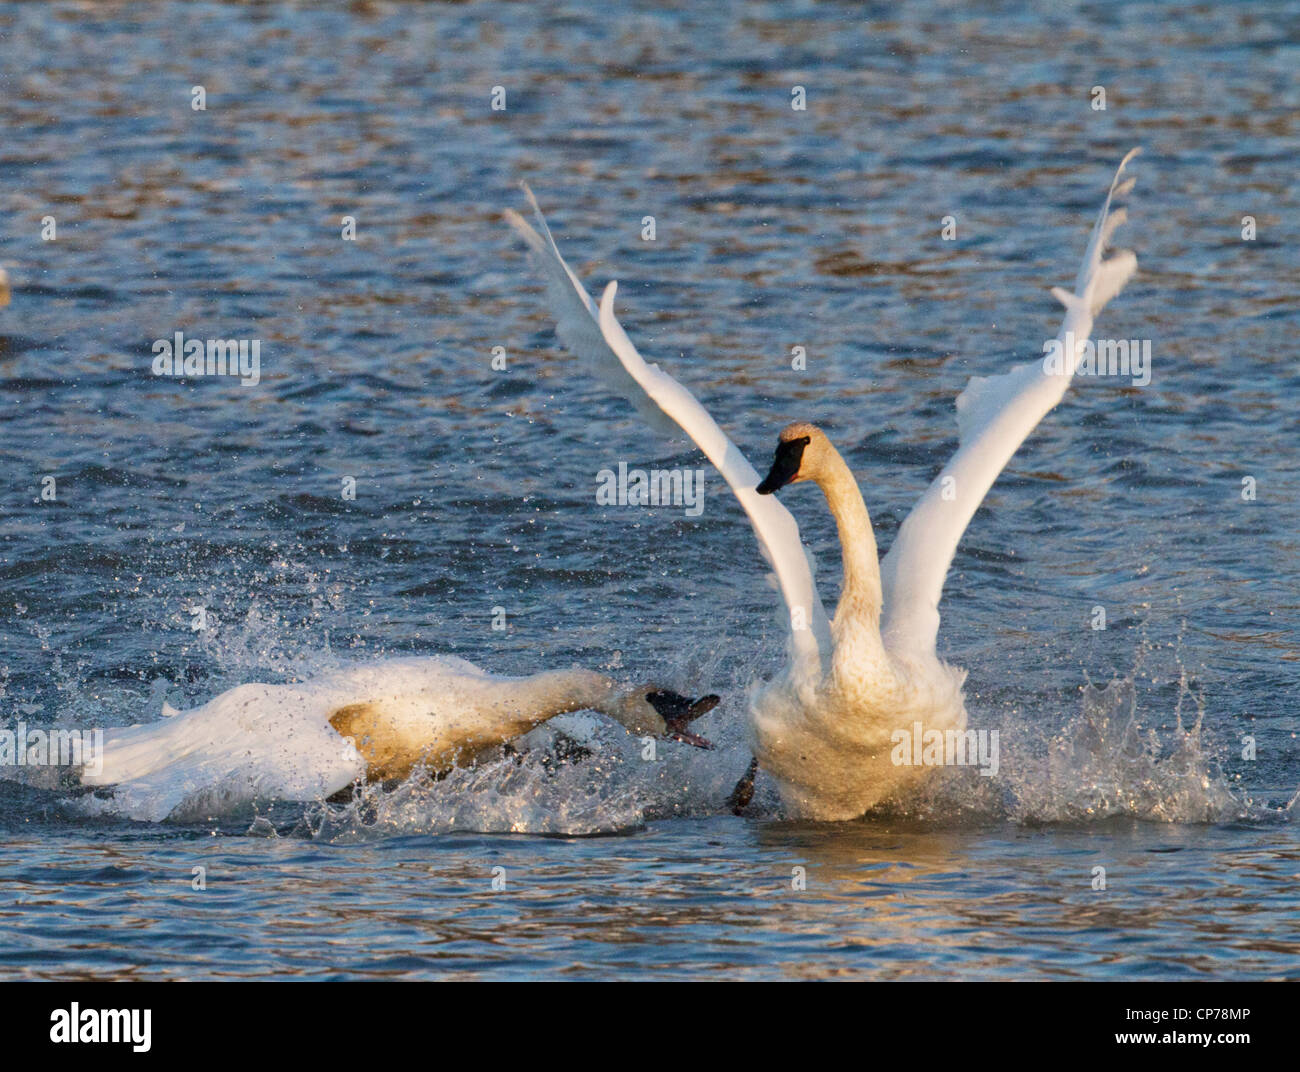 Trumpeter Swan attacks another at Potter Marsh near Anchorage, Southcentral Alaska, Autumn - Stock Image